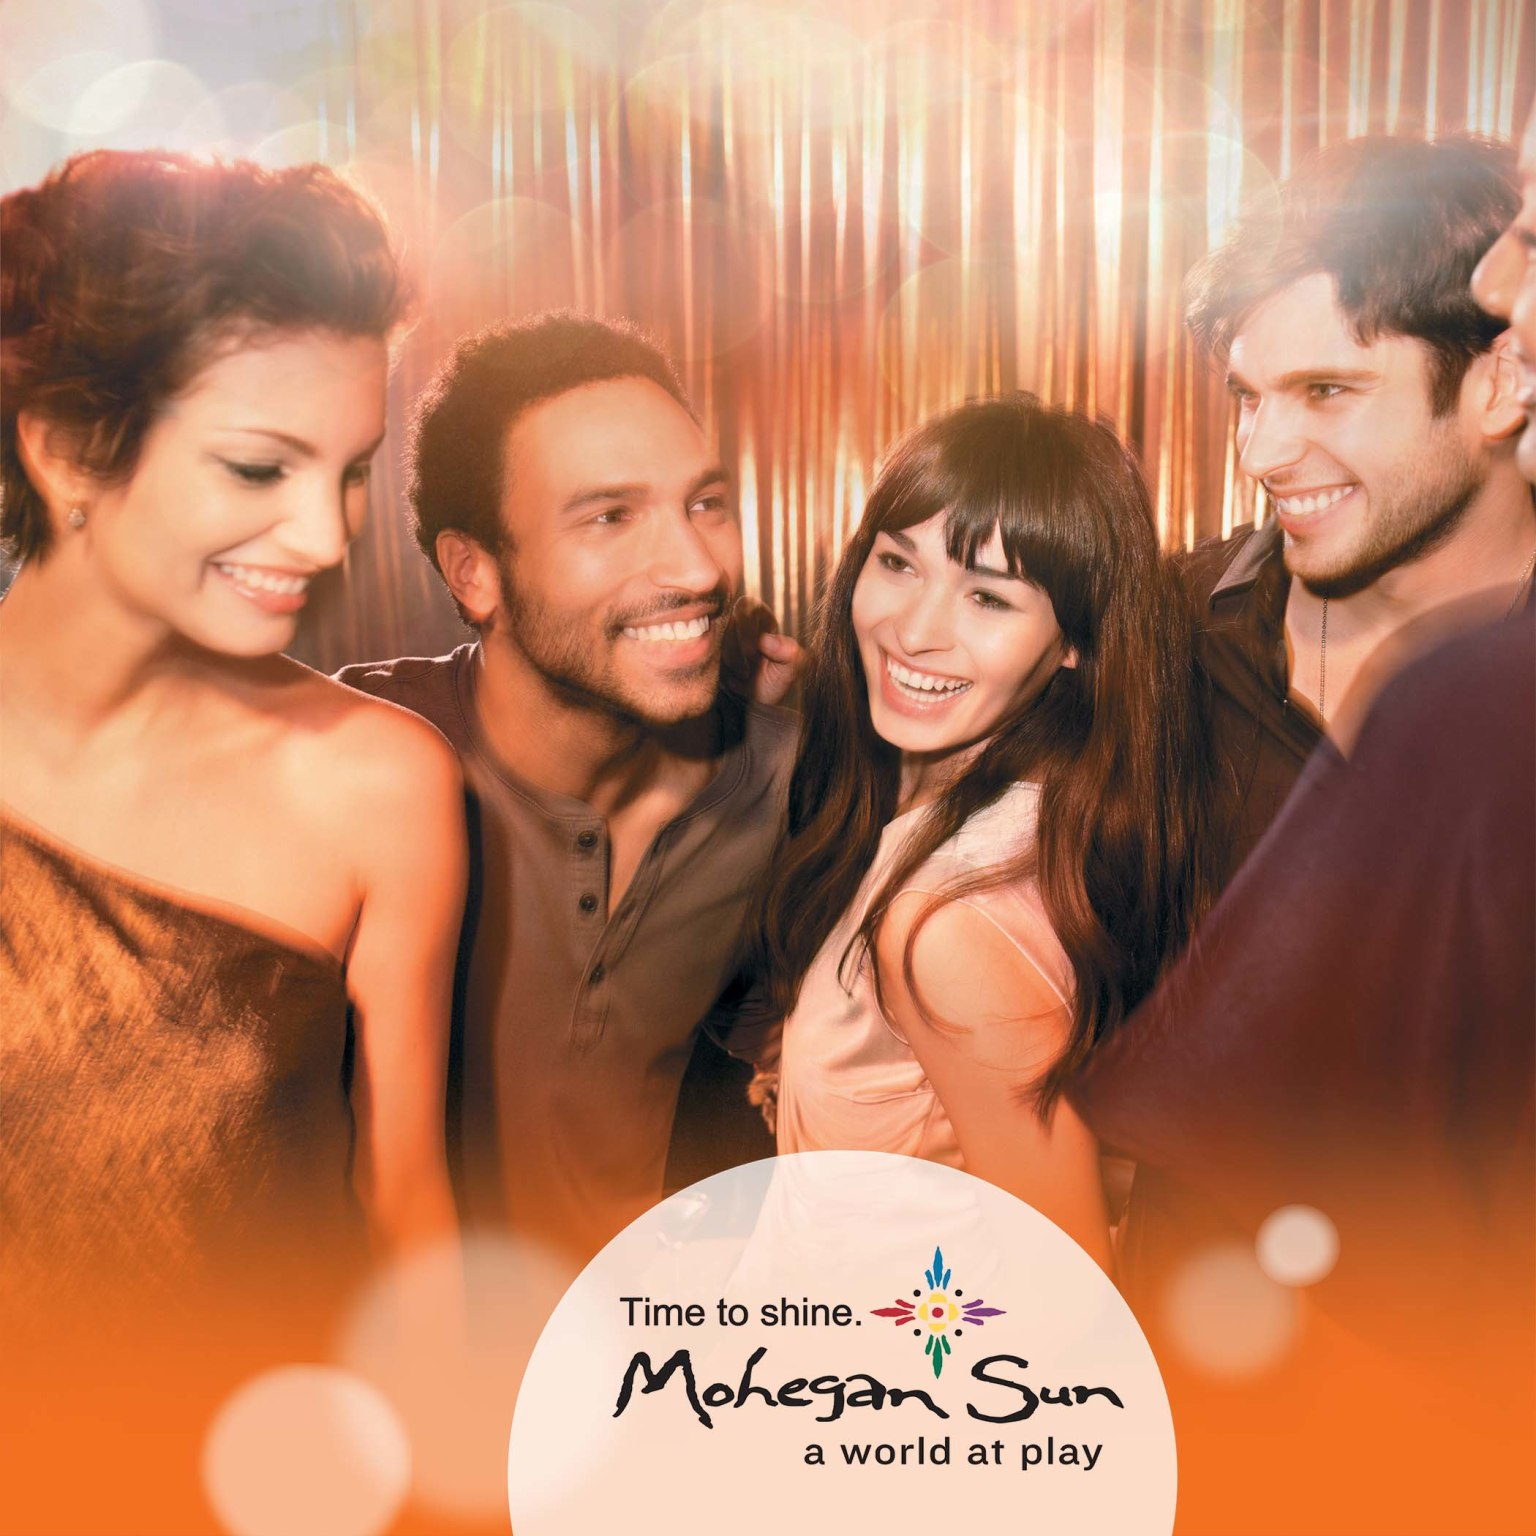 Mohegan Sun: Time to Shine